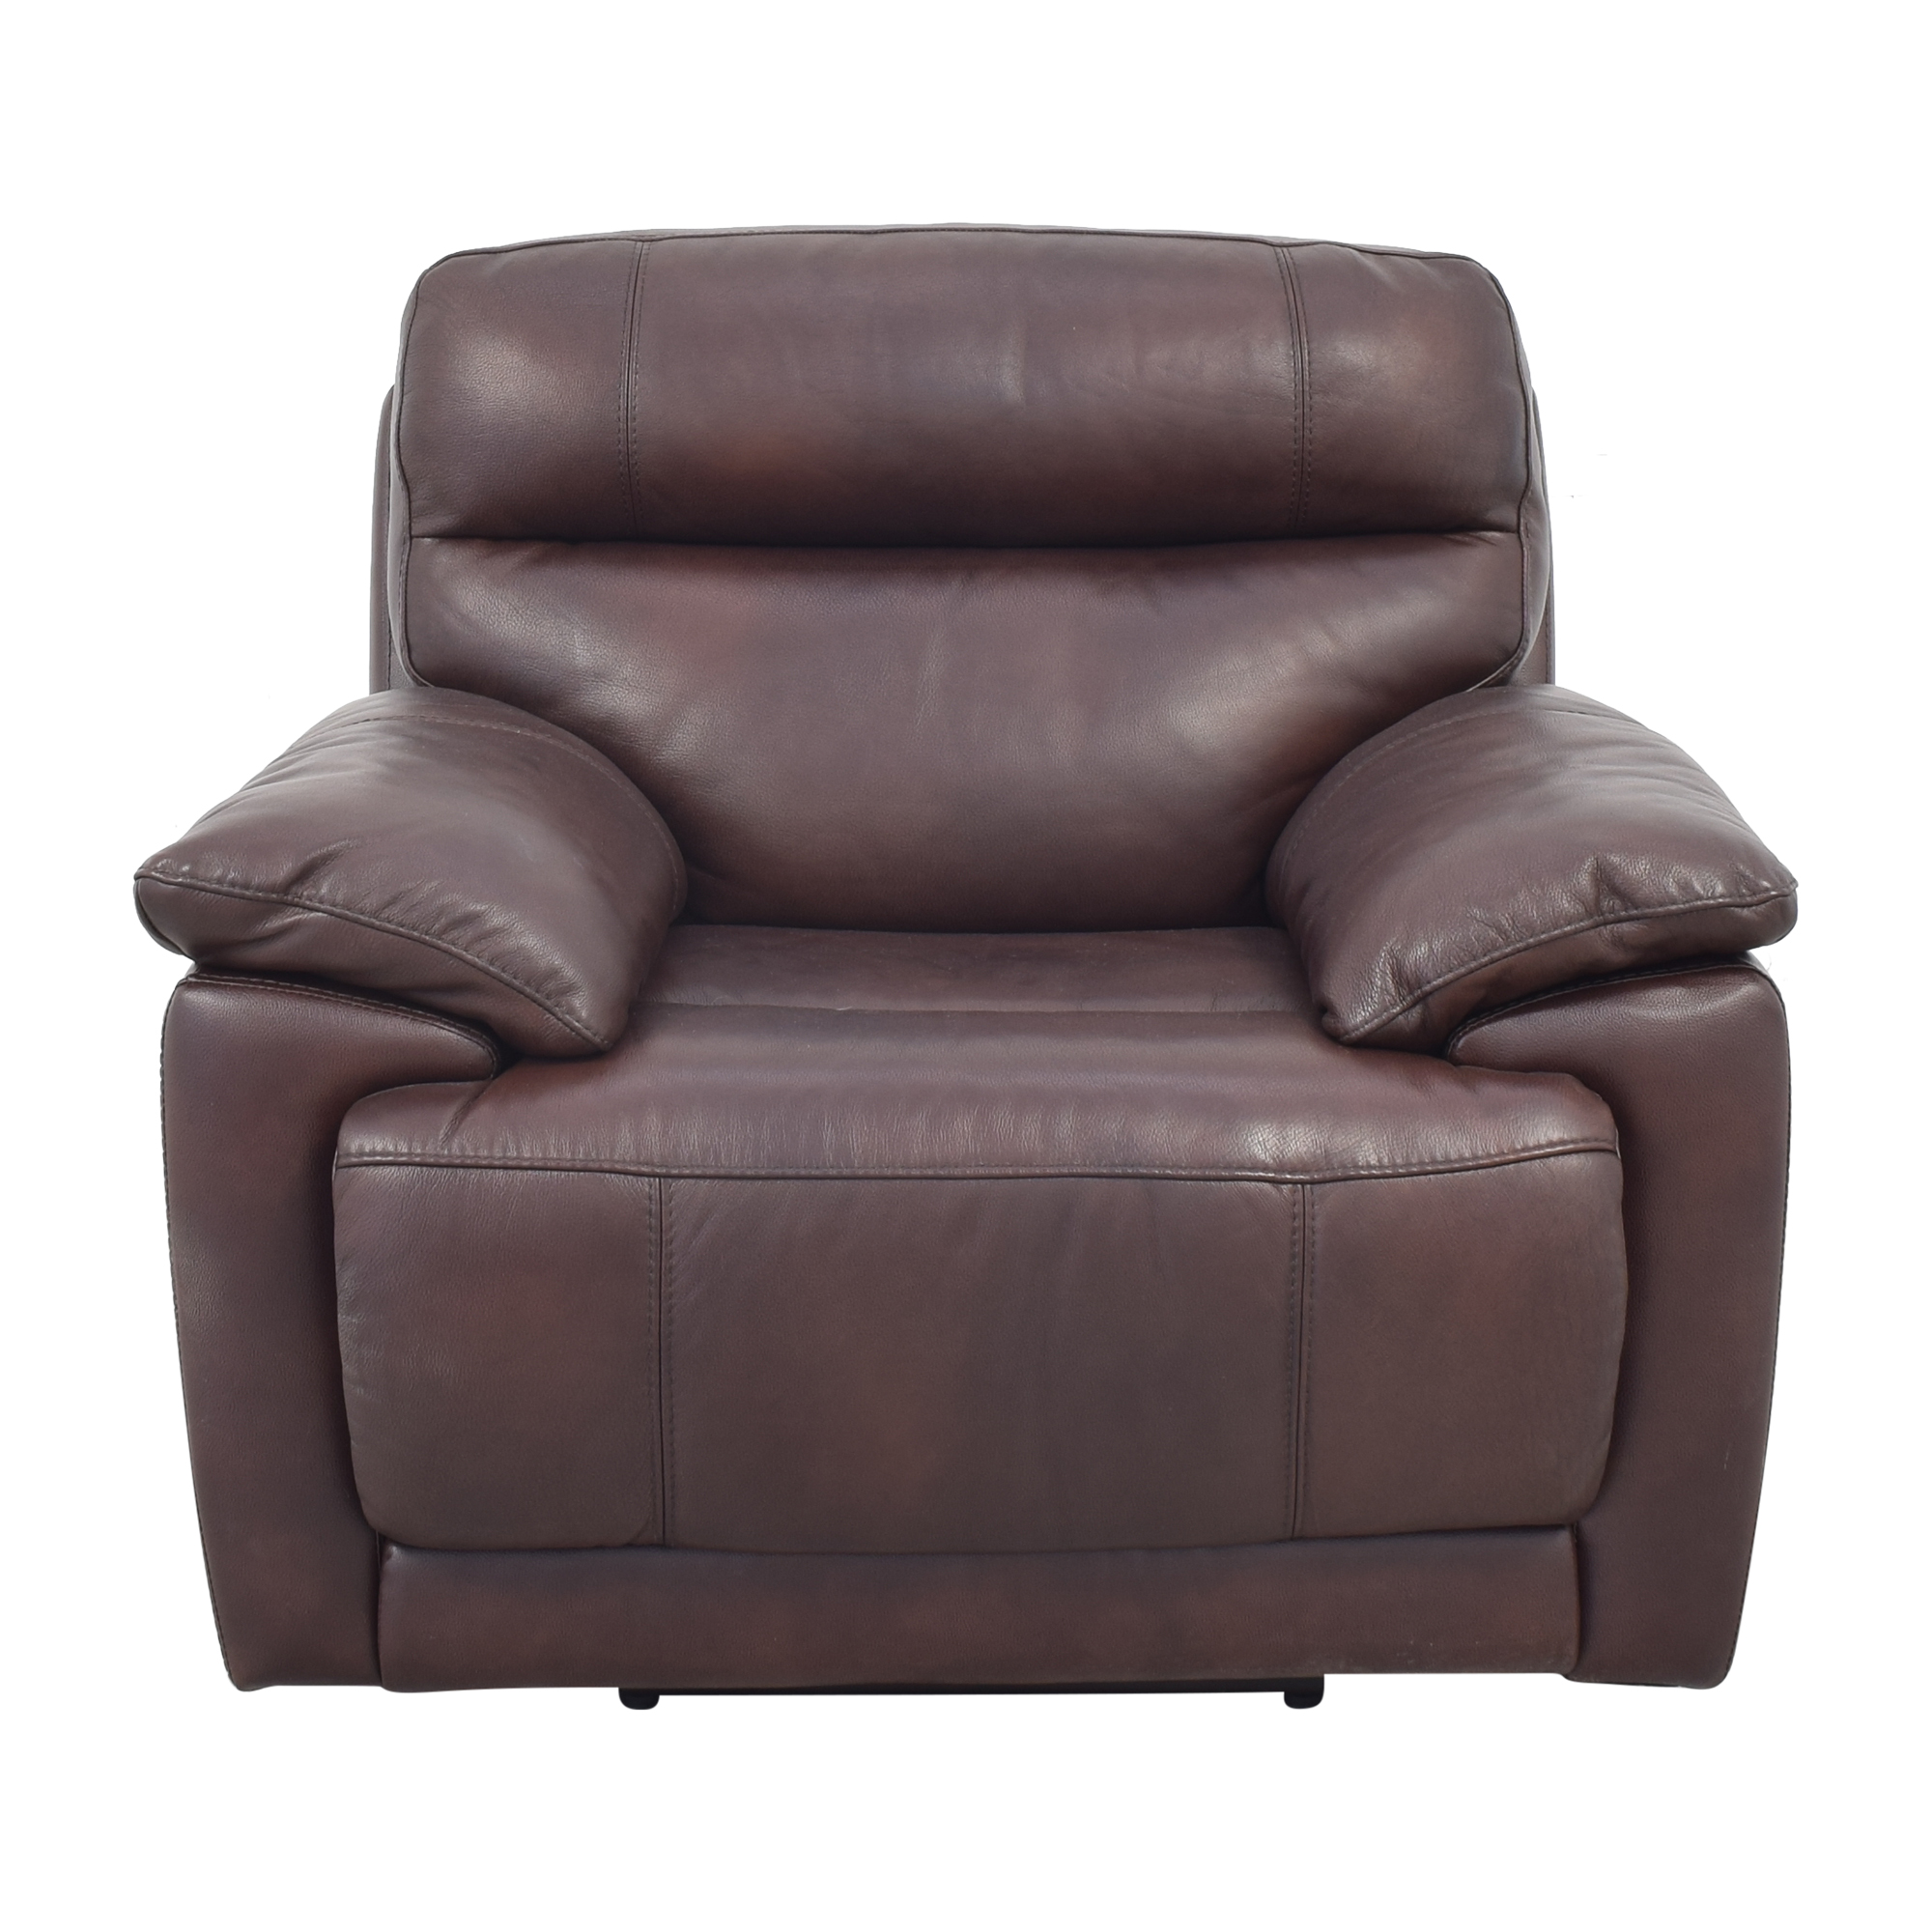 Raymour & Flanigan Raymour & Flanigan Power Recliner used